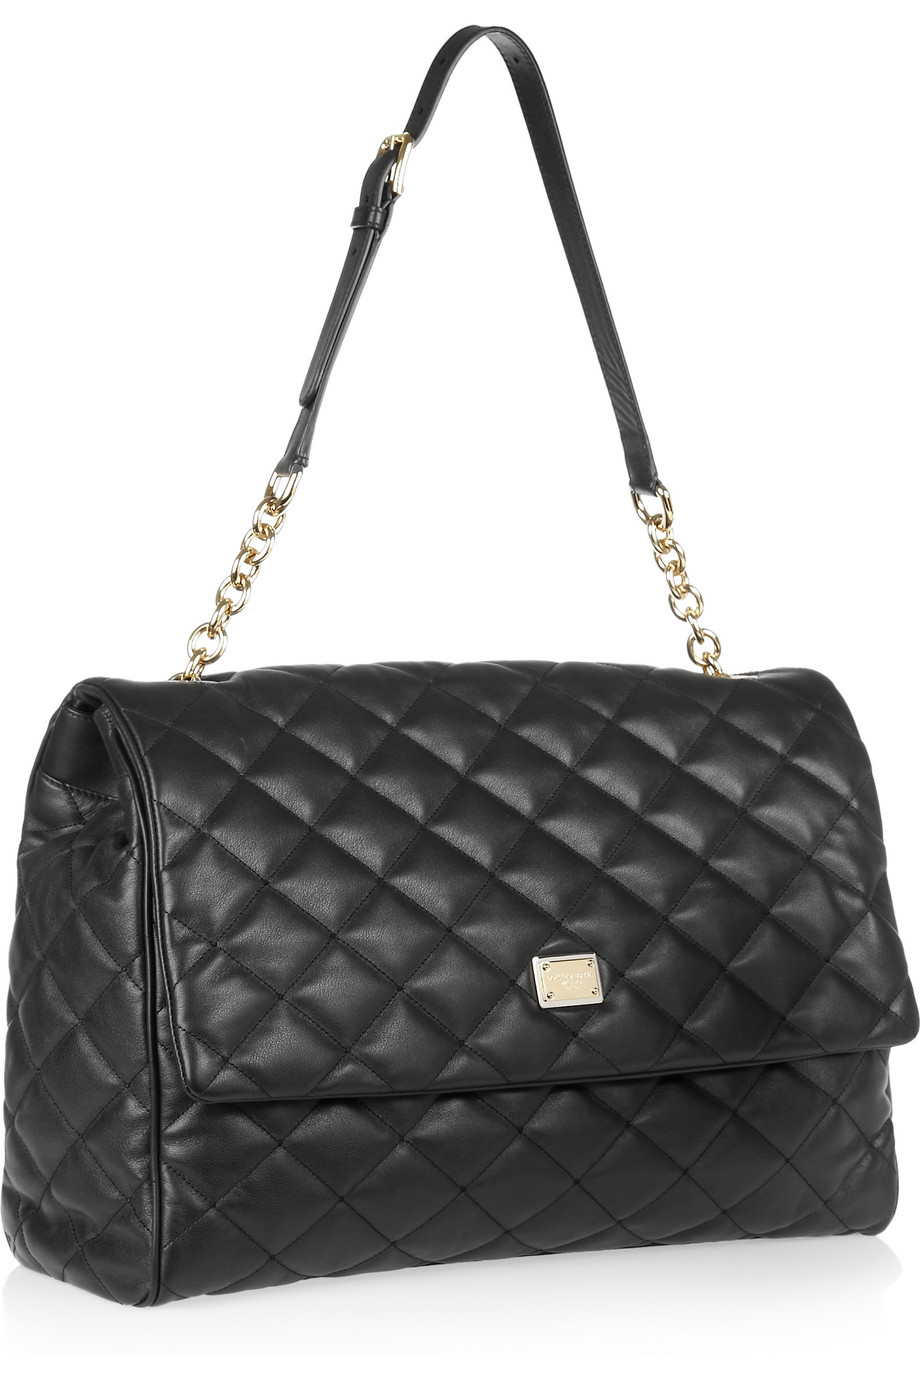 Dolce Amp Gabbana Oversized Quilted Leather Shoulder Bag In